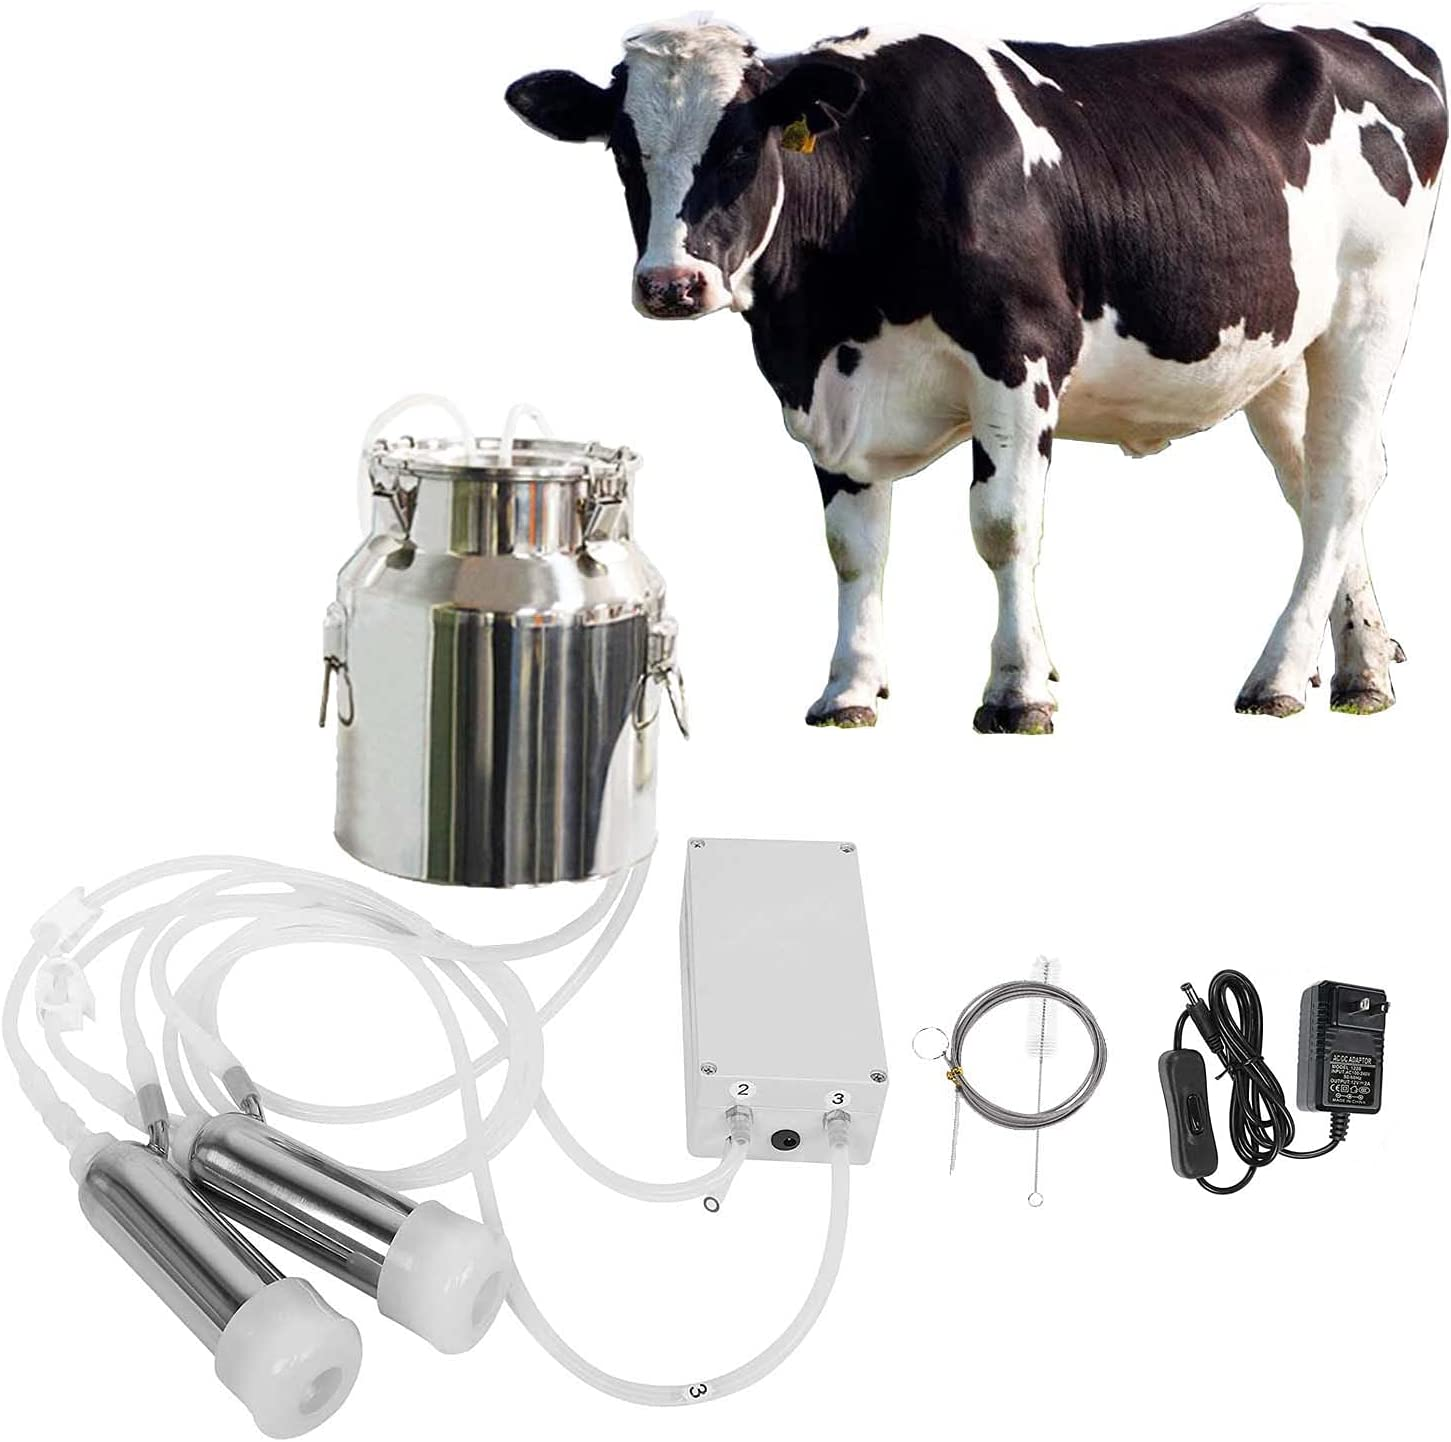 JUANYUE Portable Super beauty Ranking TOP6 product restock quality top Cow Pulsation Electric Machine Milking Vacuum